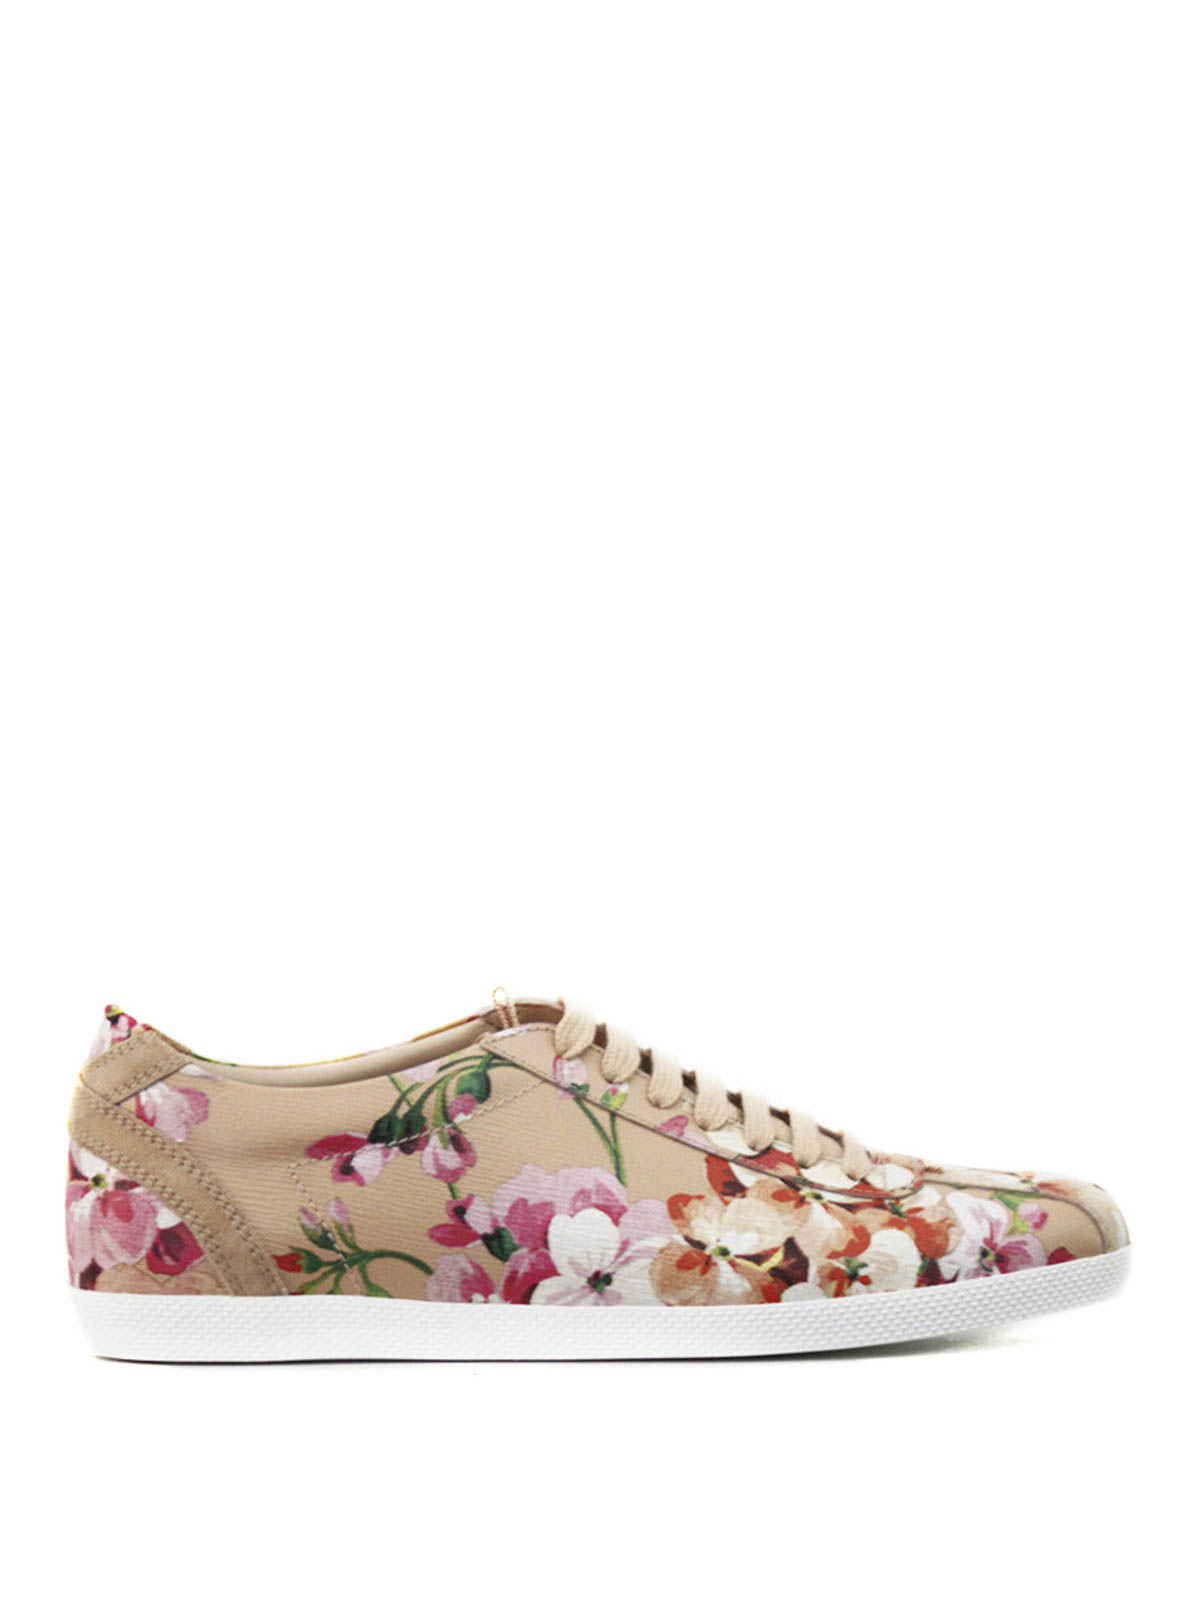 c638d623084 Gucci - Blooms print GG Supreme sneakers - trainers - 408527 DJH50 5780